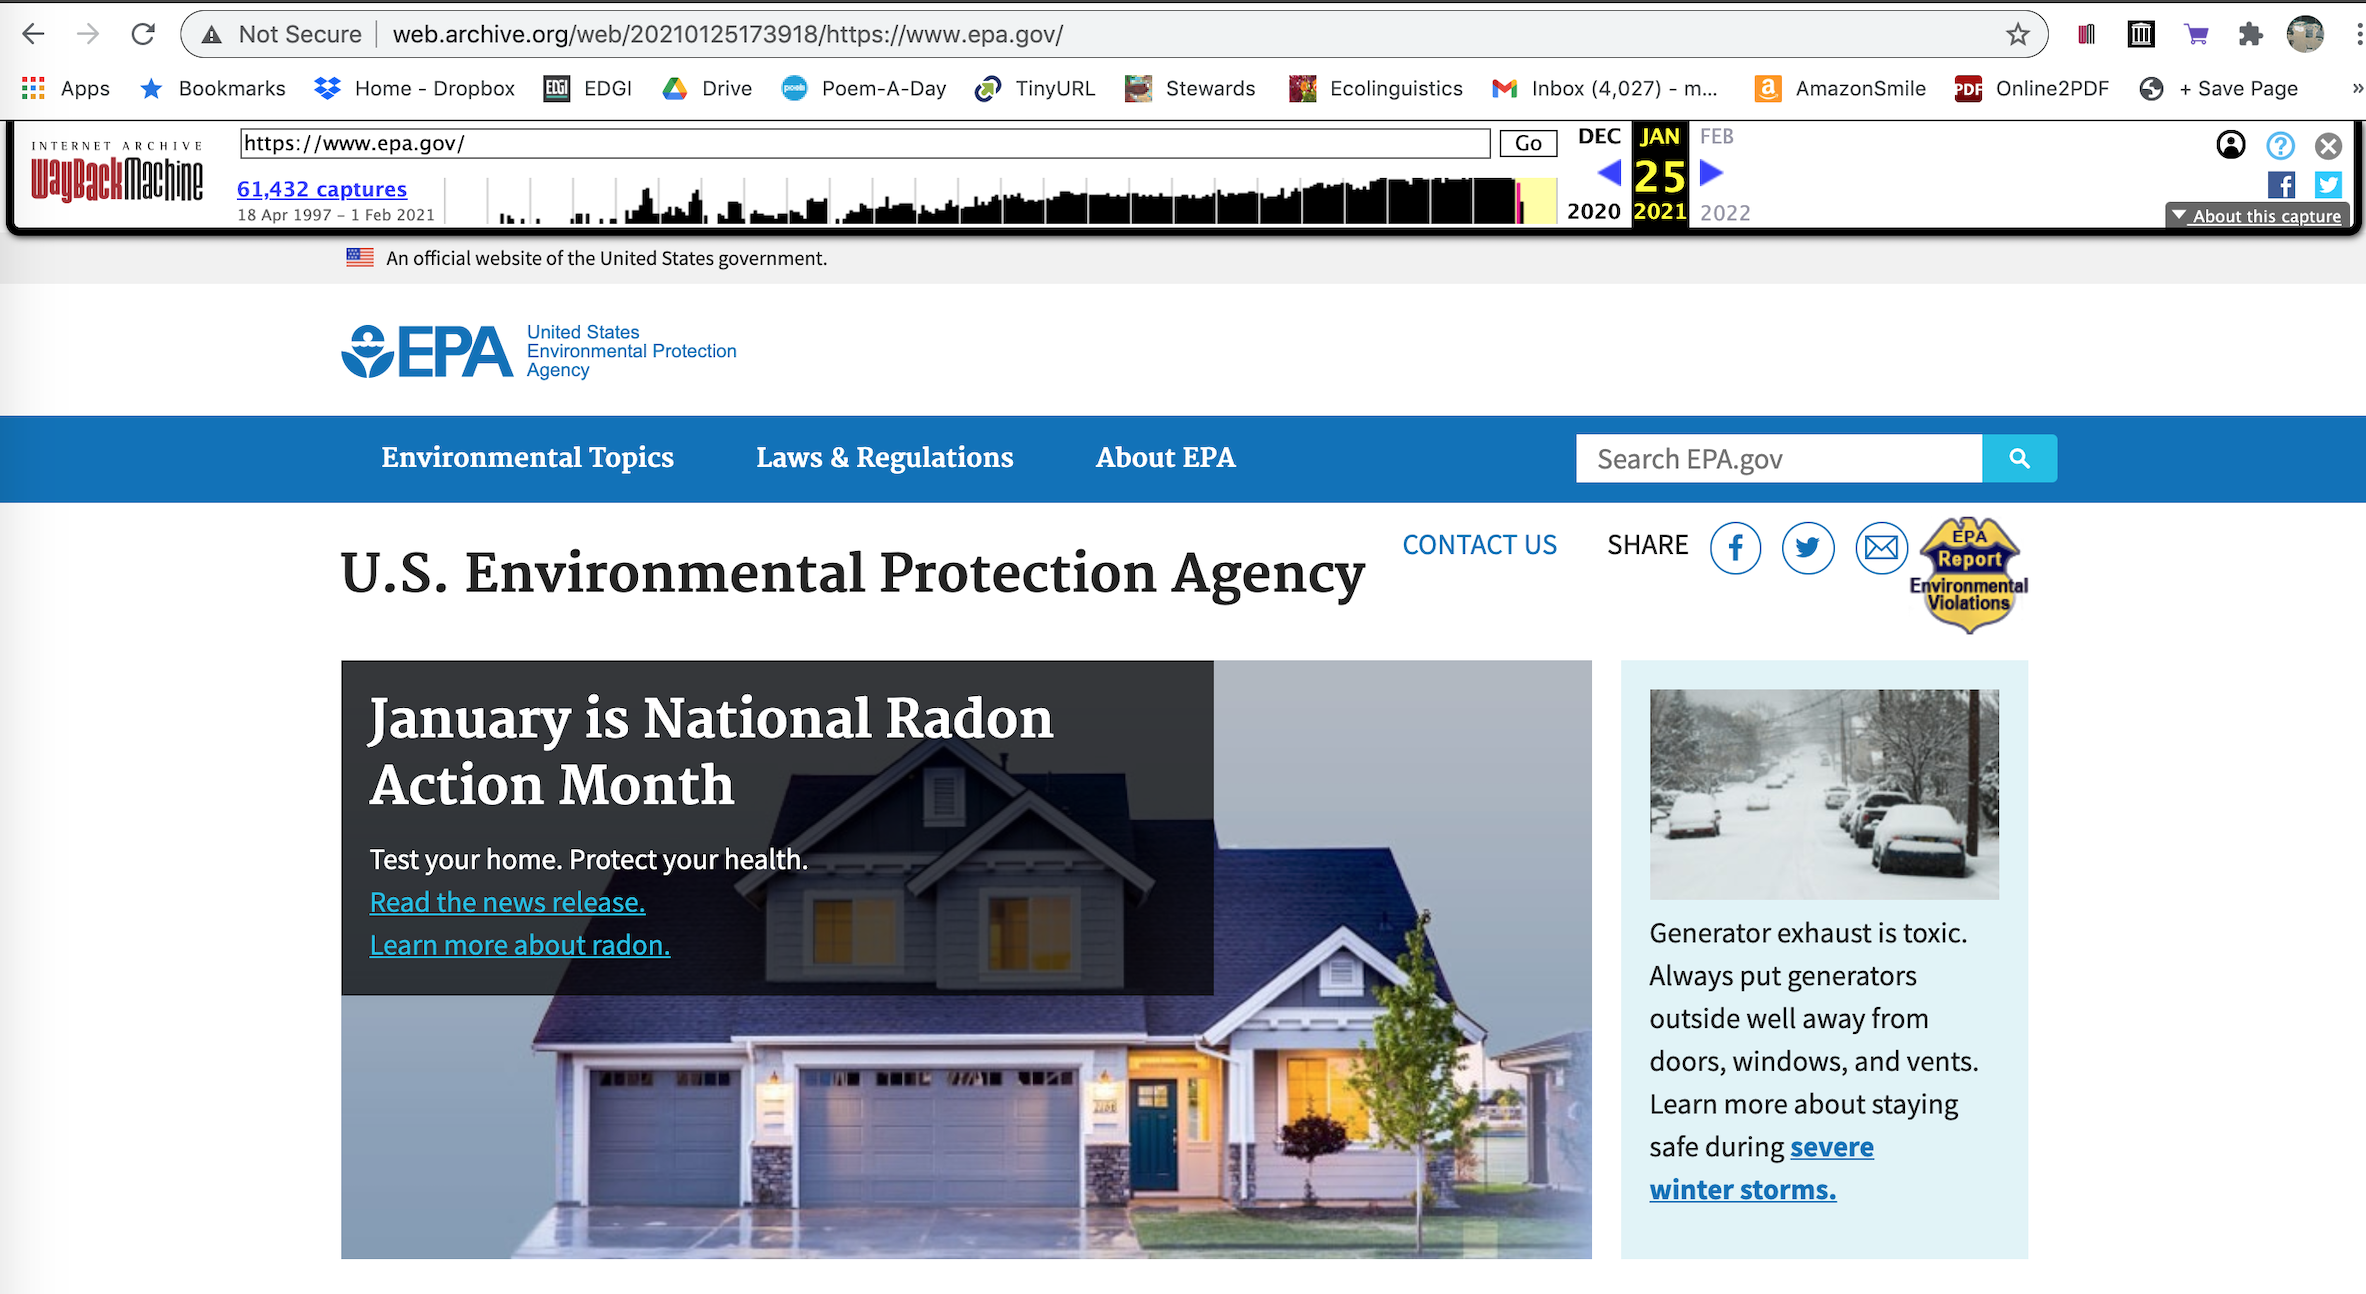 Since Biden's Inauguration, Environmental Enforcement Has New Place of Prominence on the EPA's Homepage